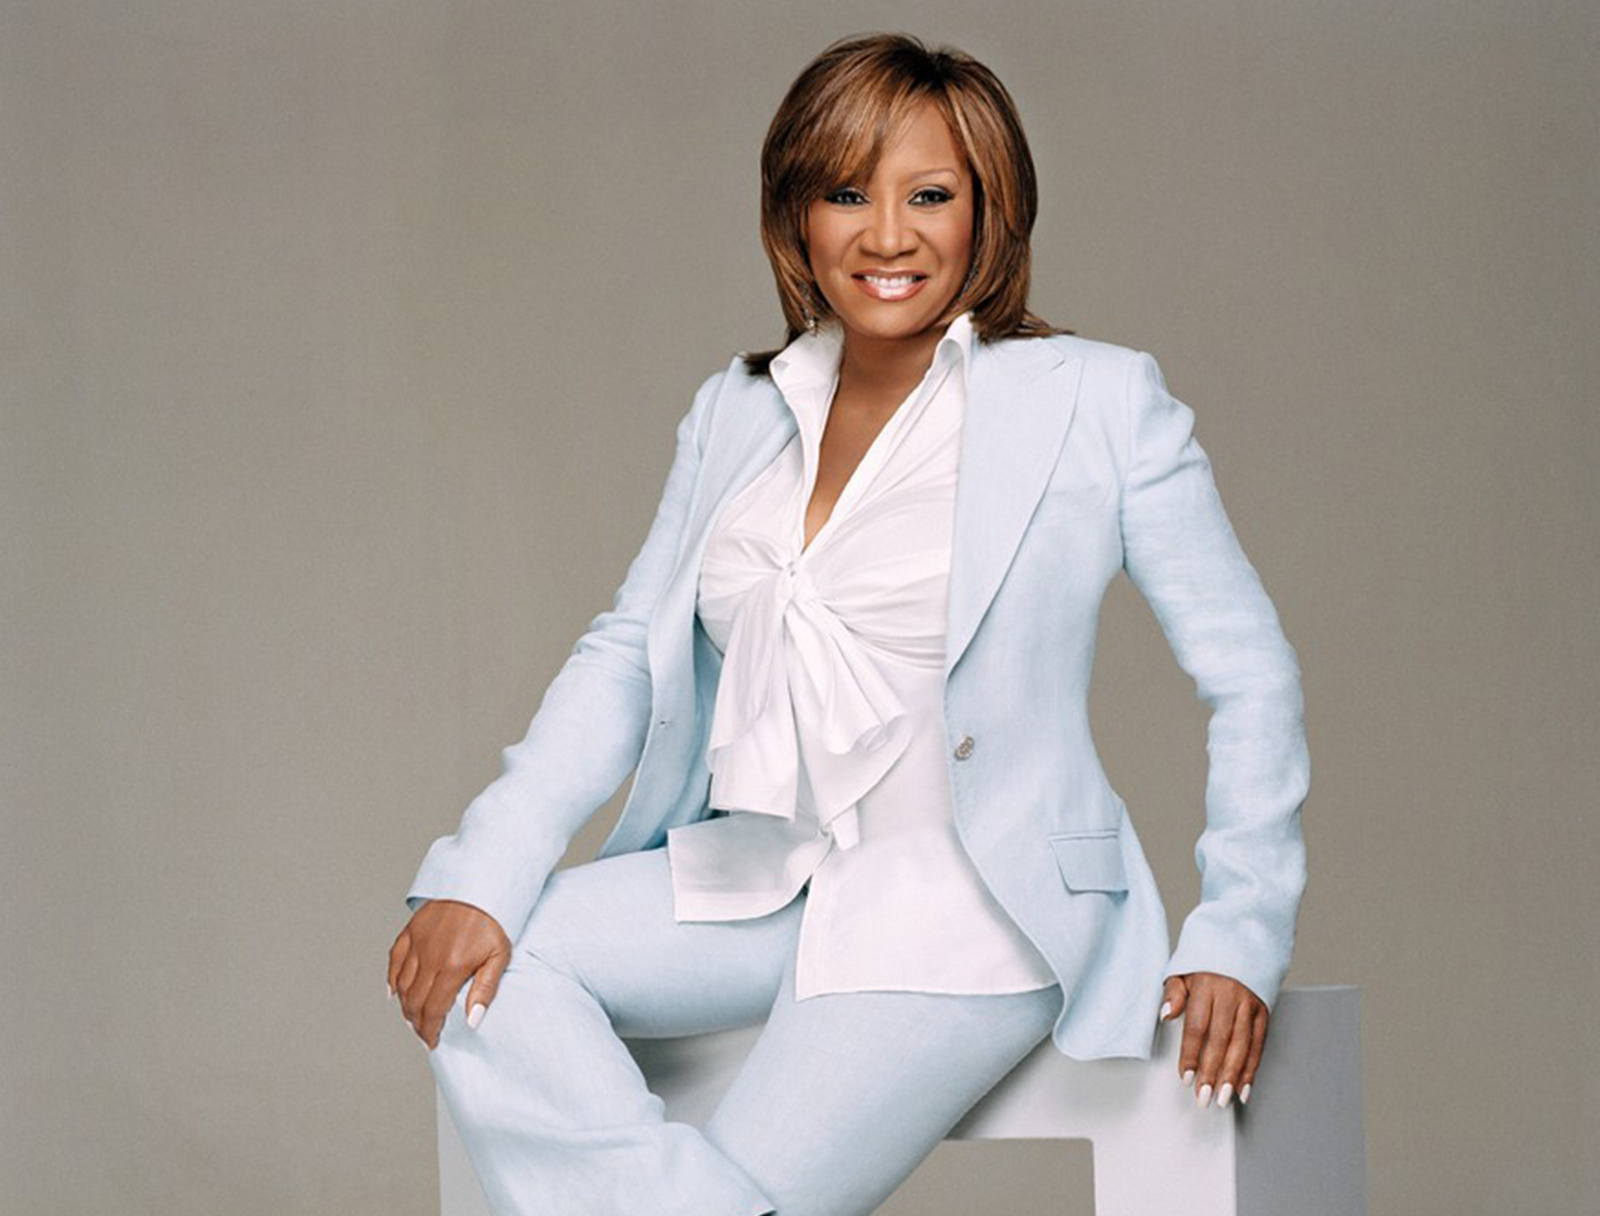 Patti Labelle